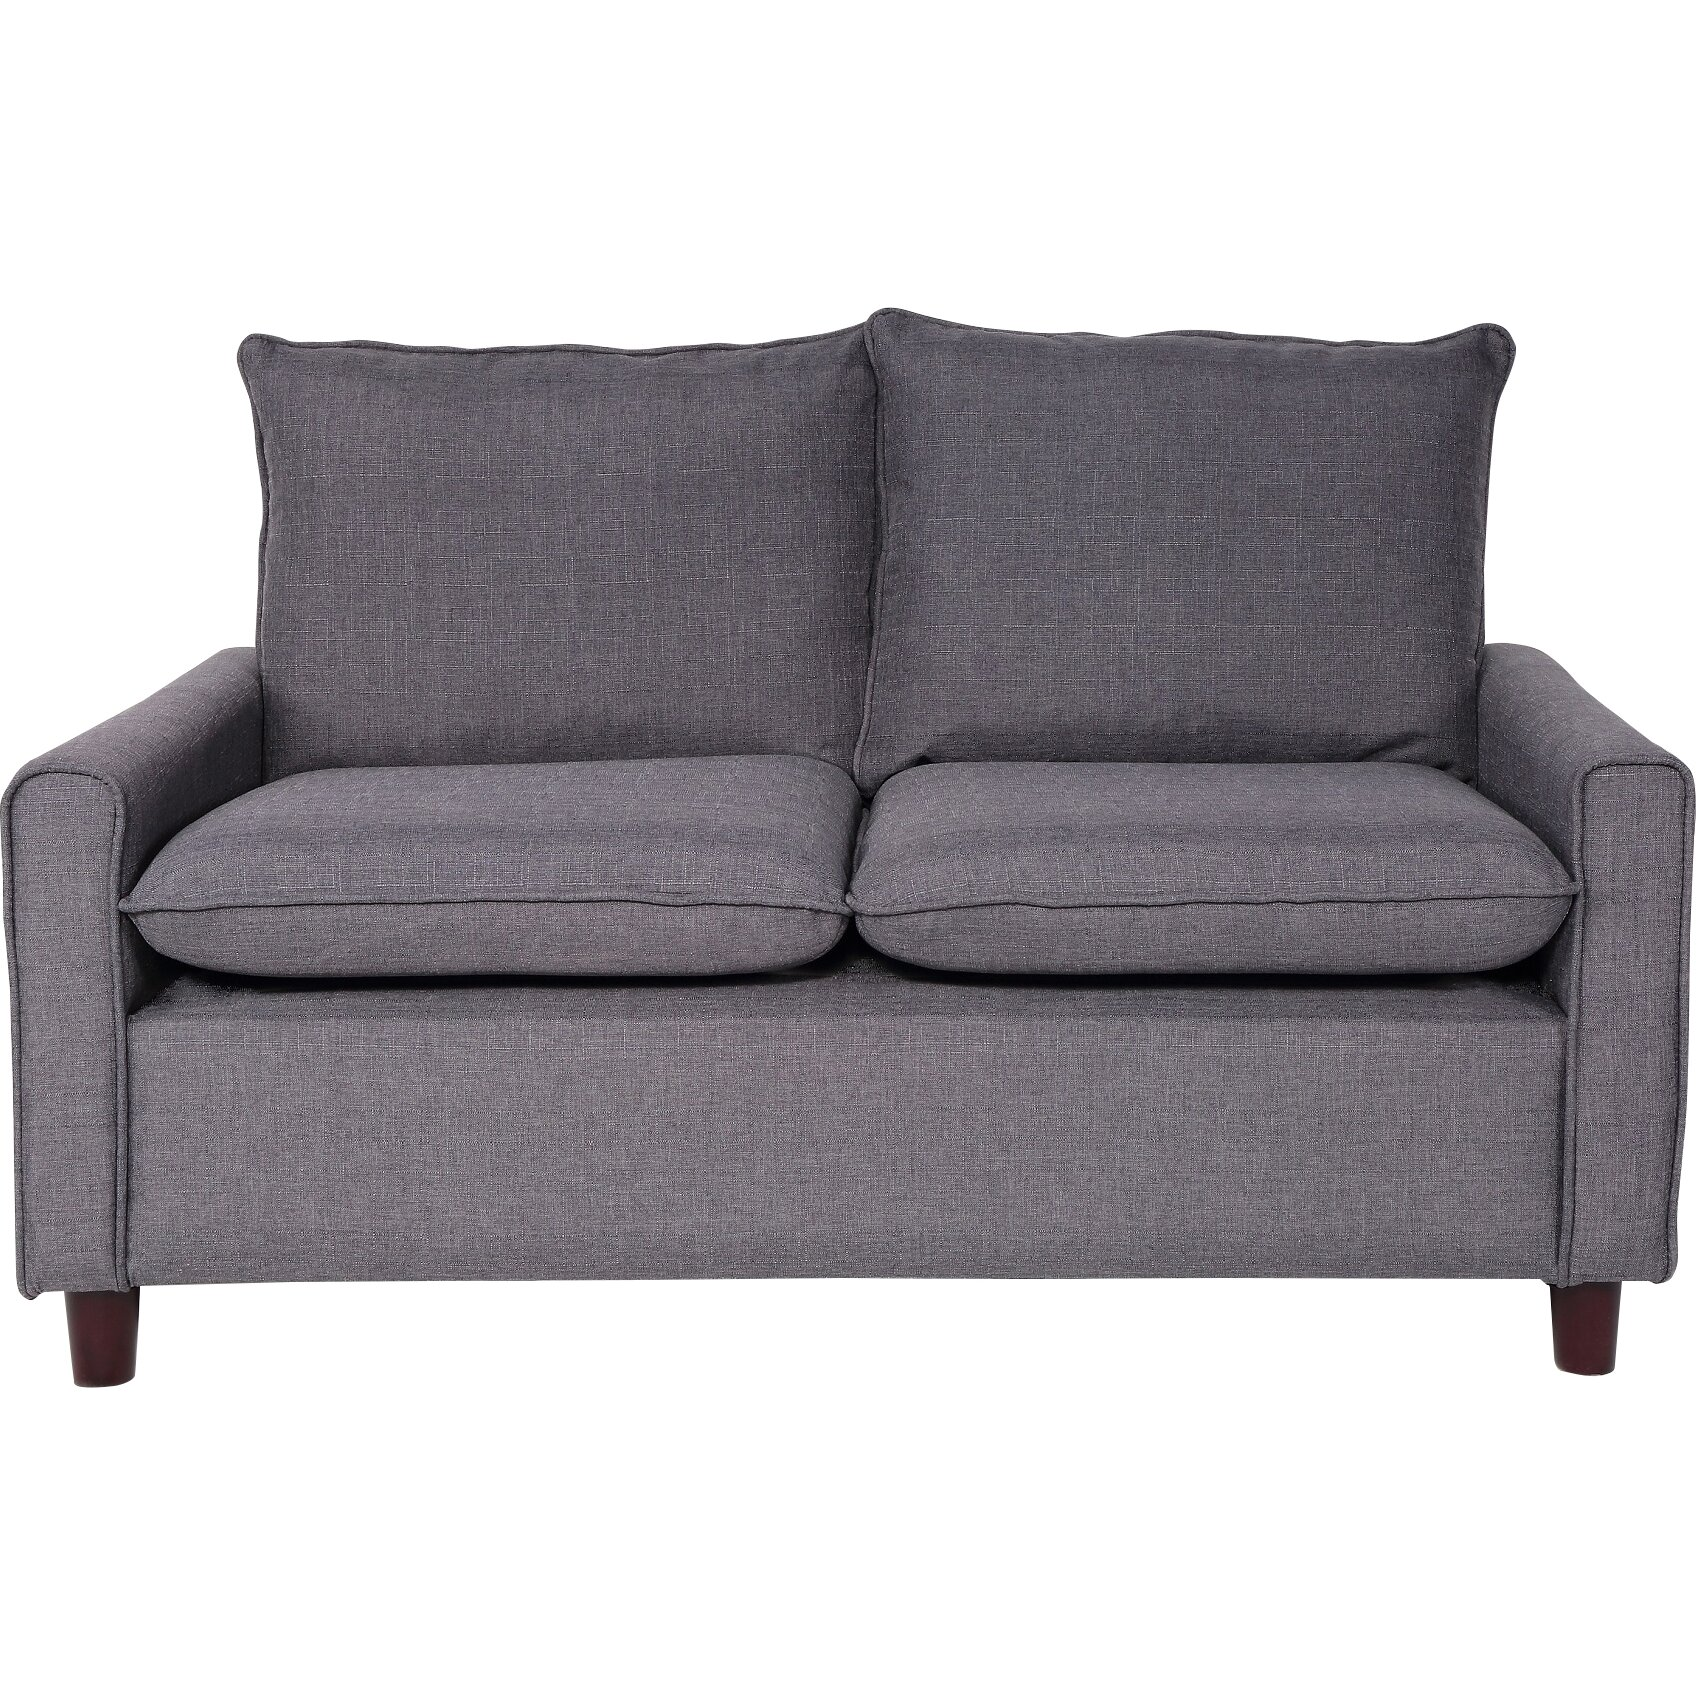 loveseat by contain batar